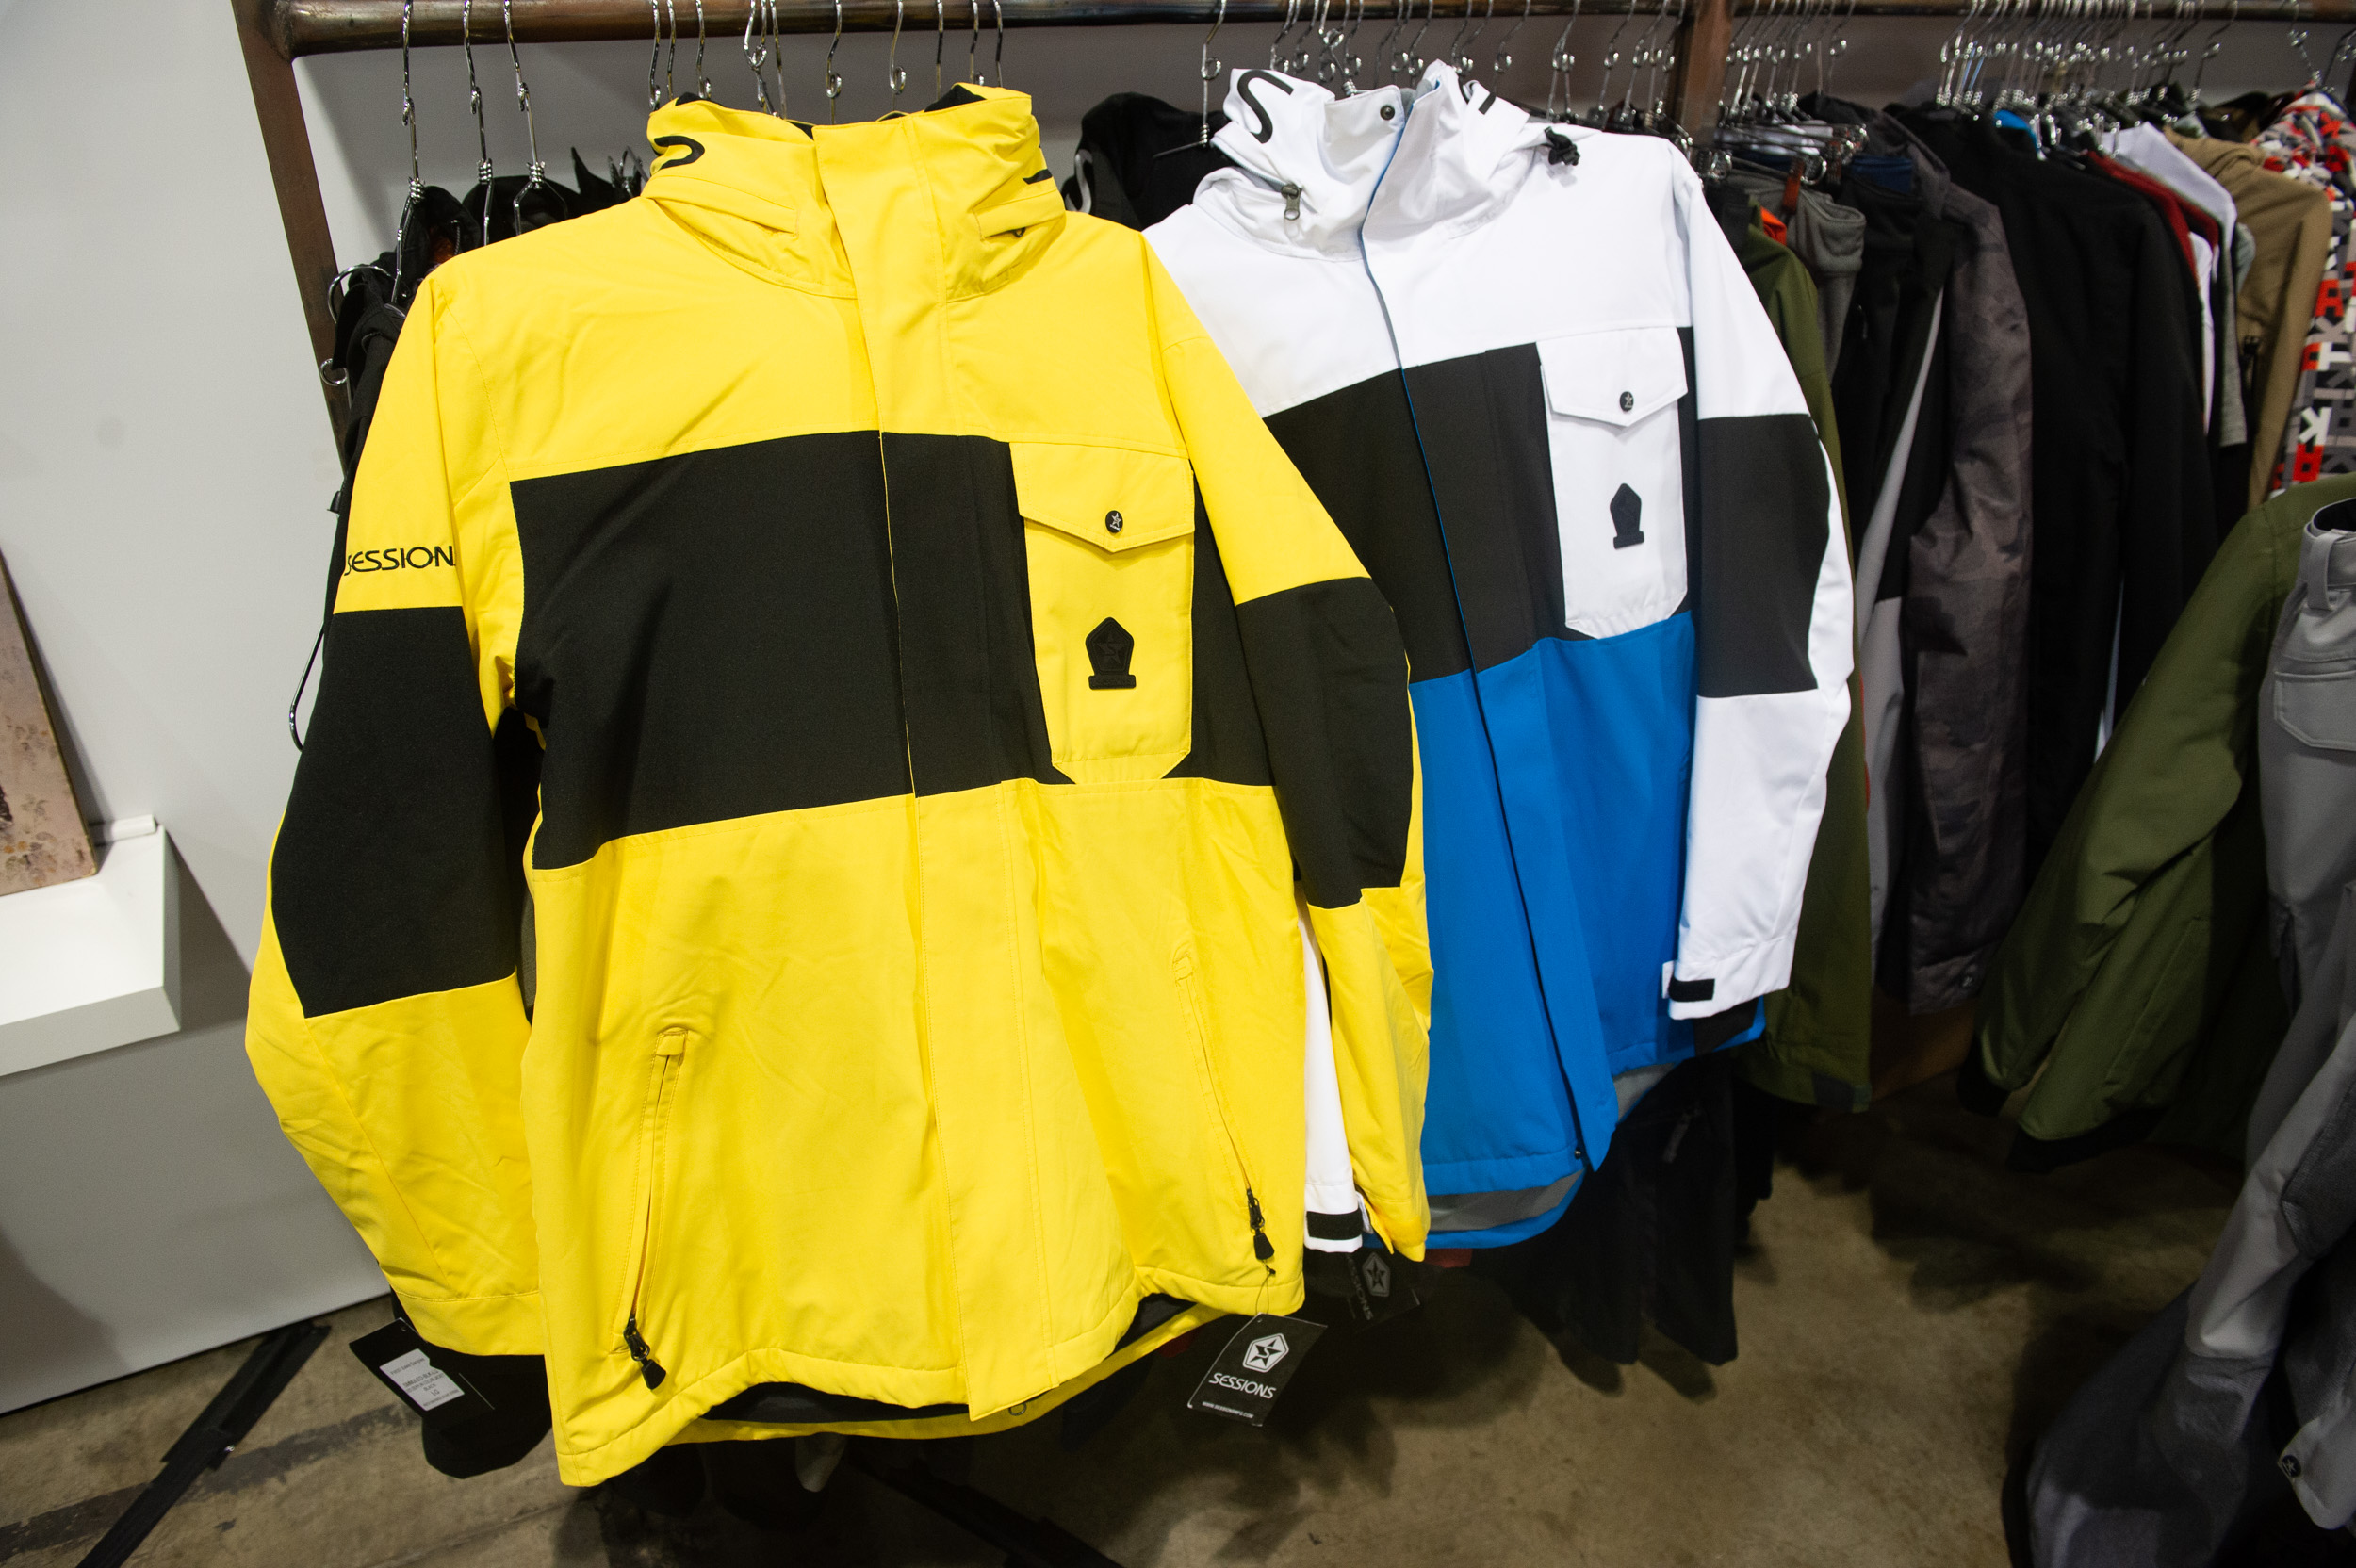 Sessions Annex Jacket